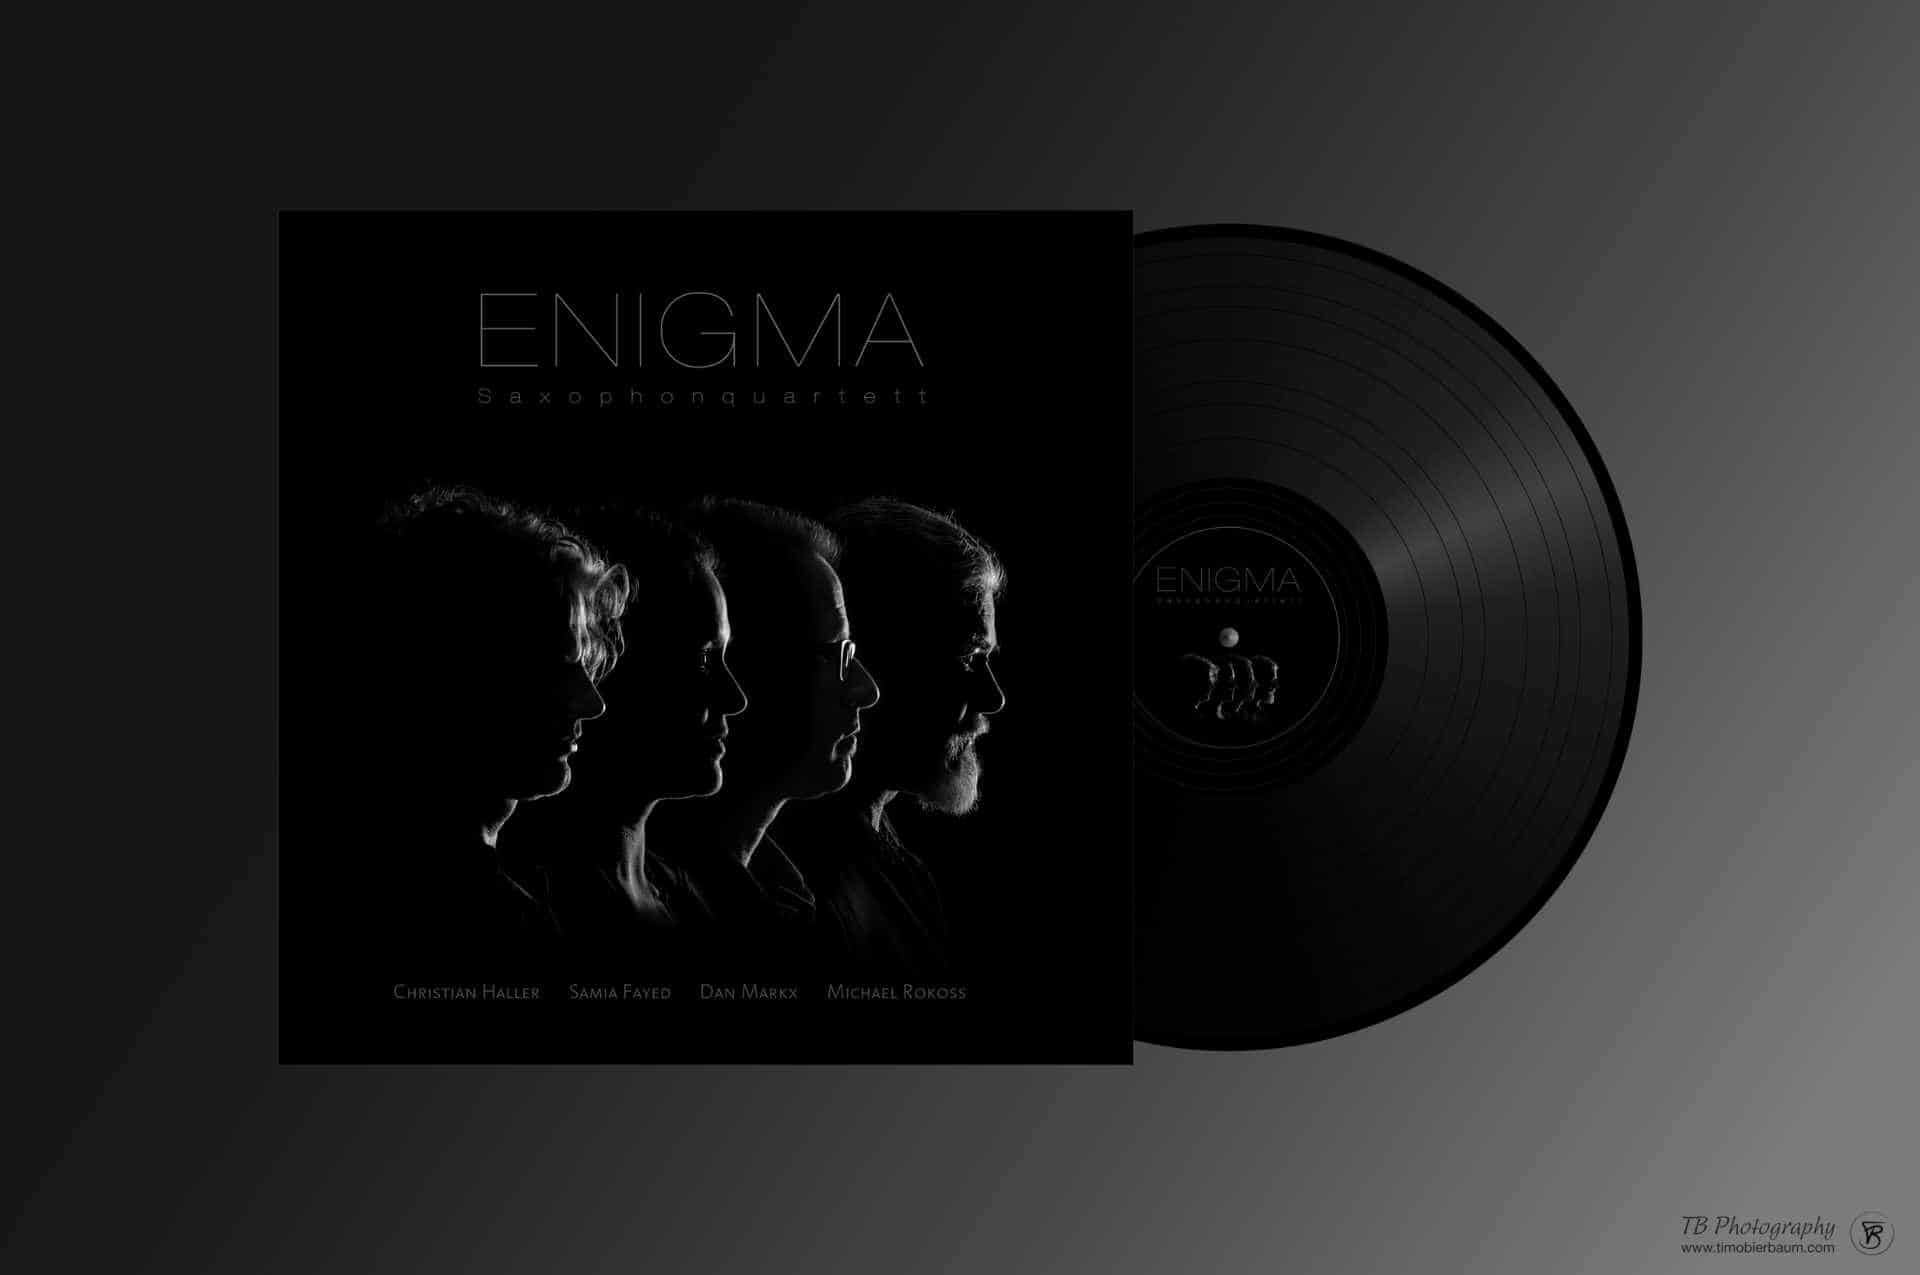 Enigma Cover & LP Design